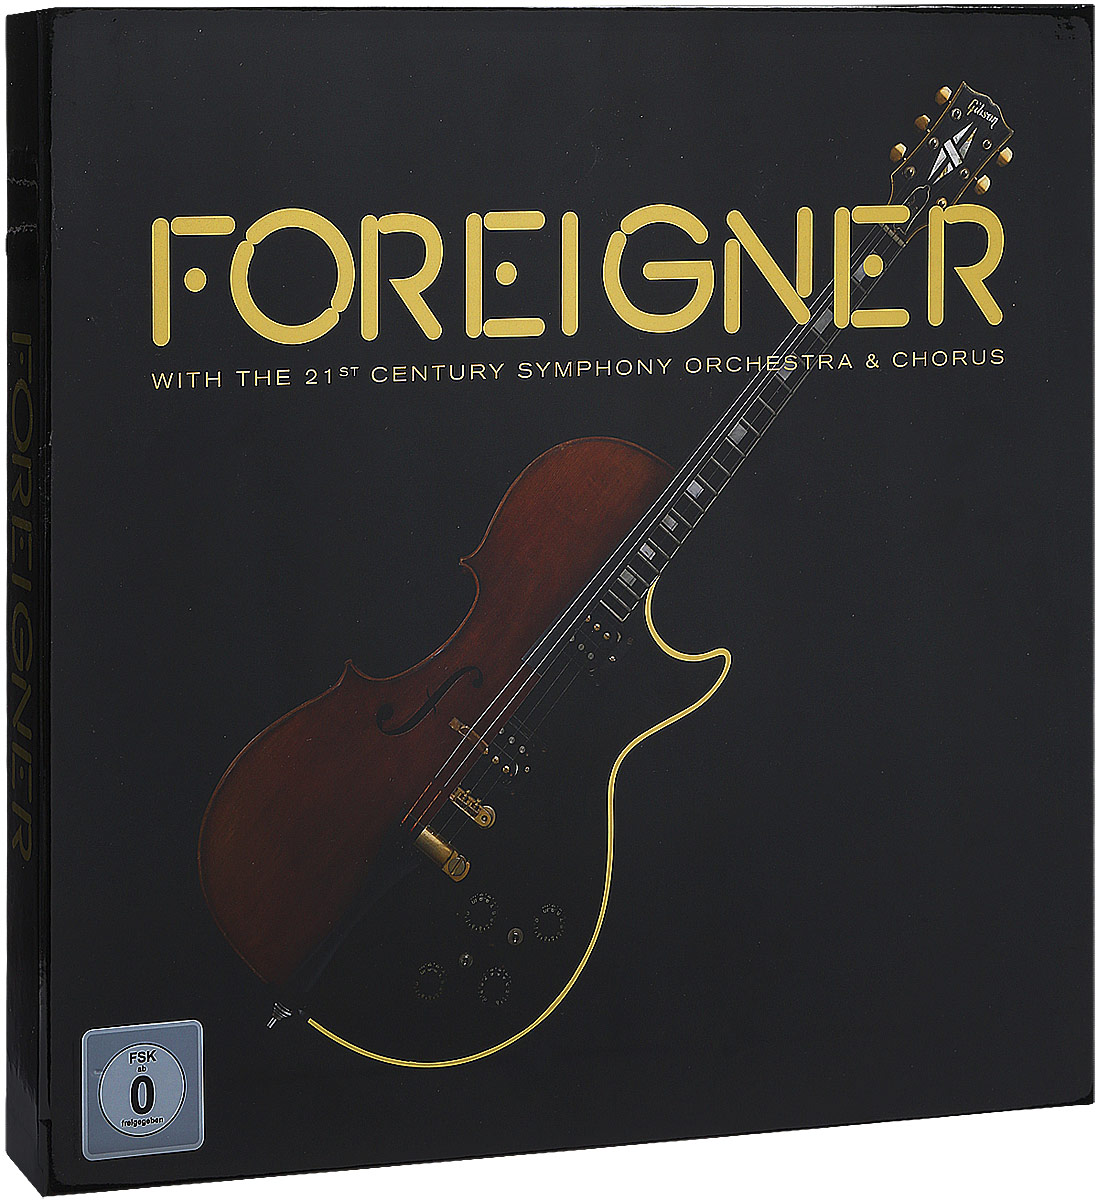 Foreigner Foreigner. With the 21st Century Symphony Orchestra & Chorus (CD + DVD + 2 LP + T-shirt) foreigner records